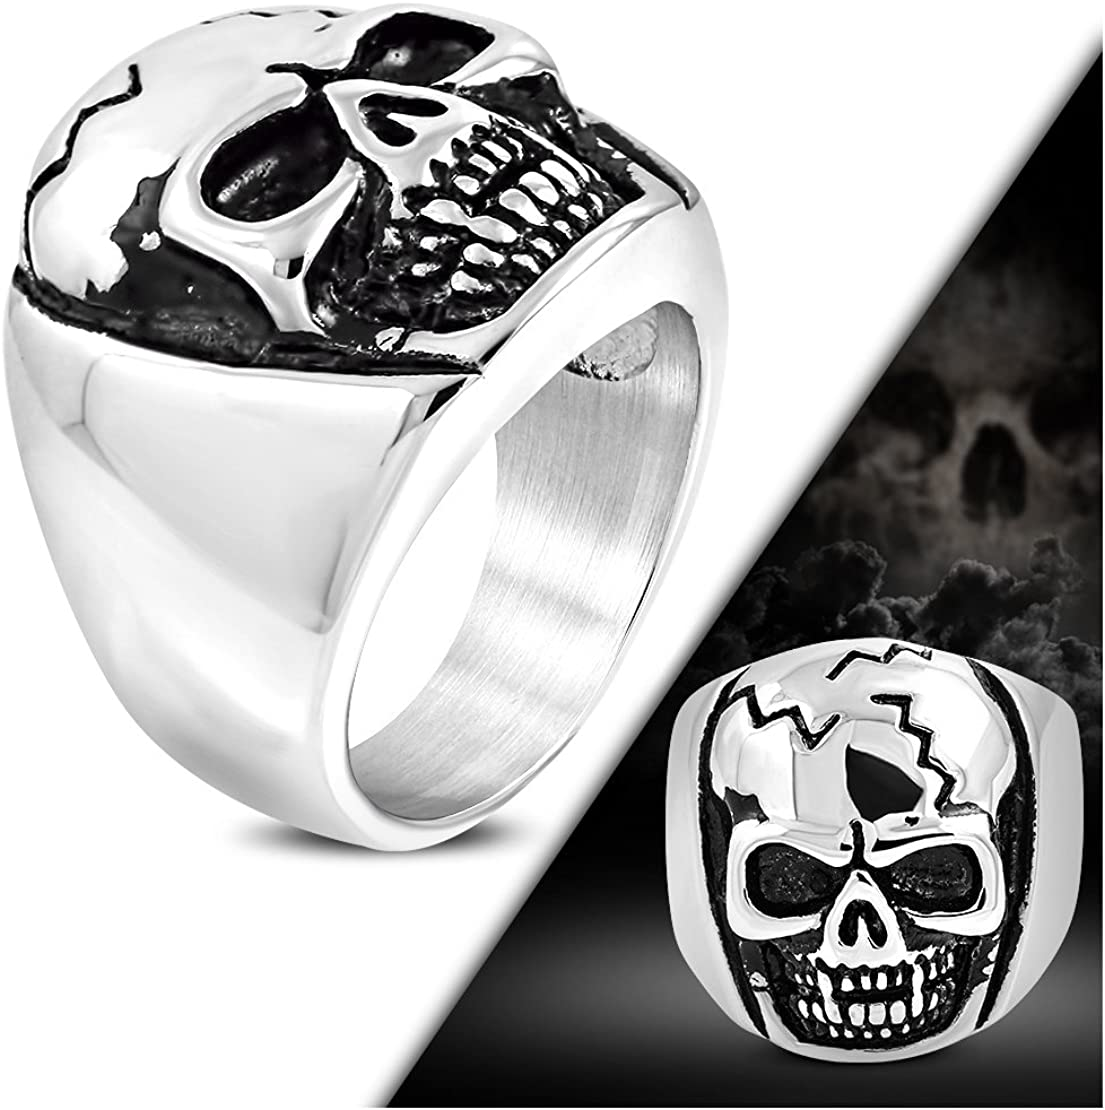 Stainless Steel 2 Color Cracked Skull Head Biker Ring